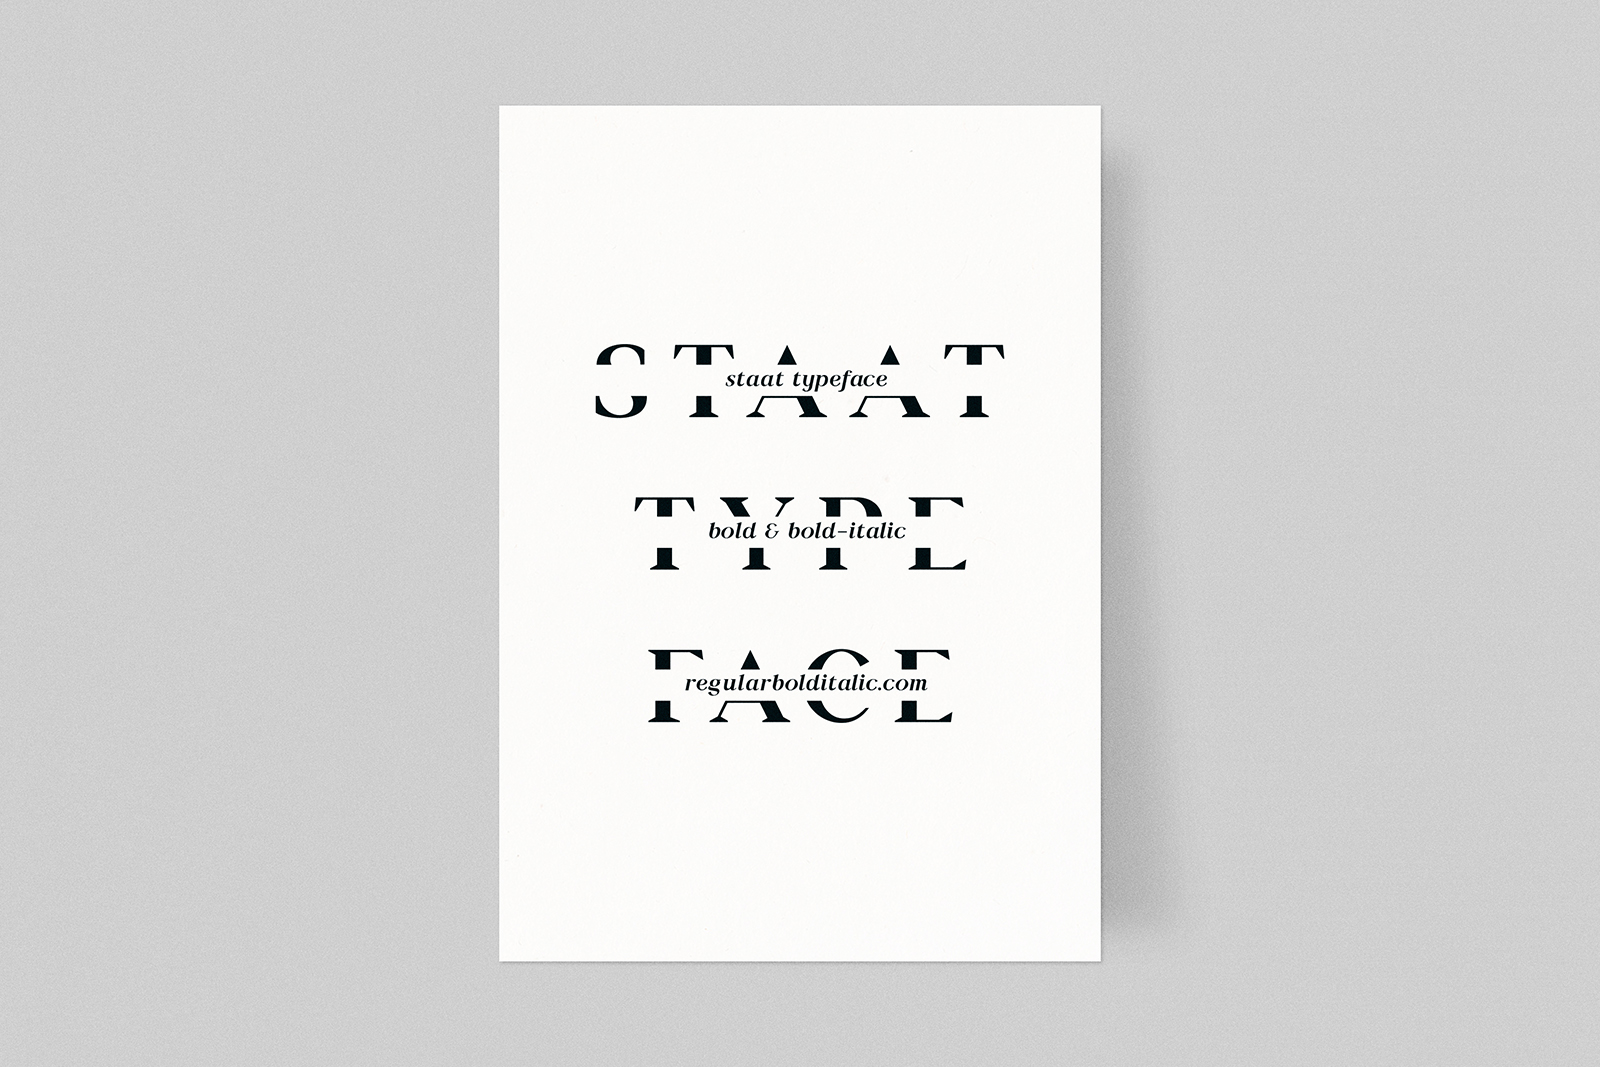 Staat typeface rbi